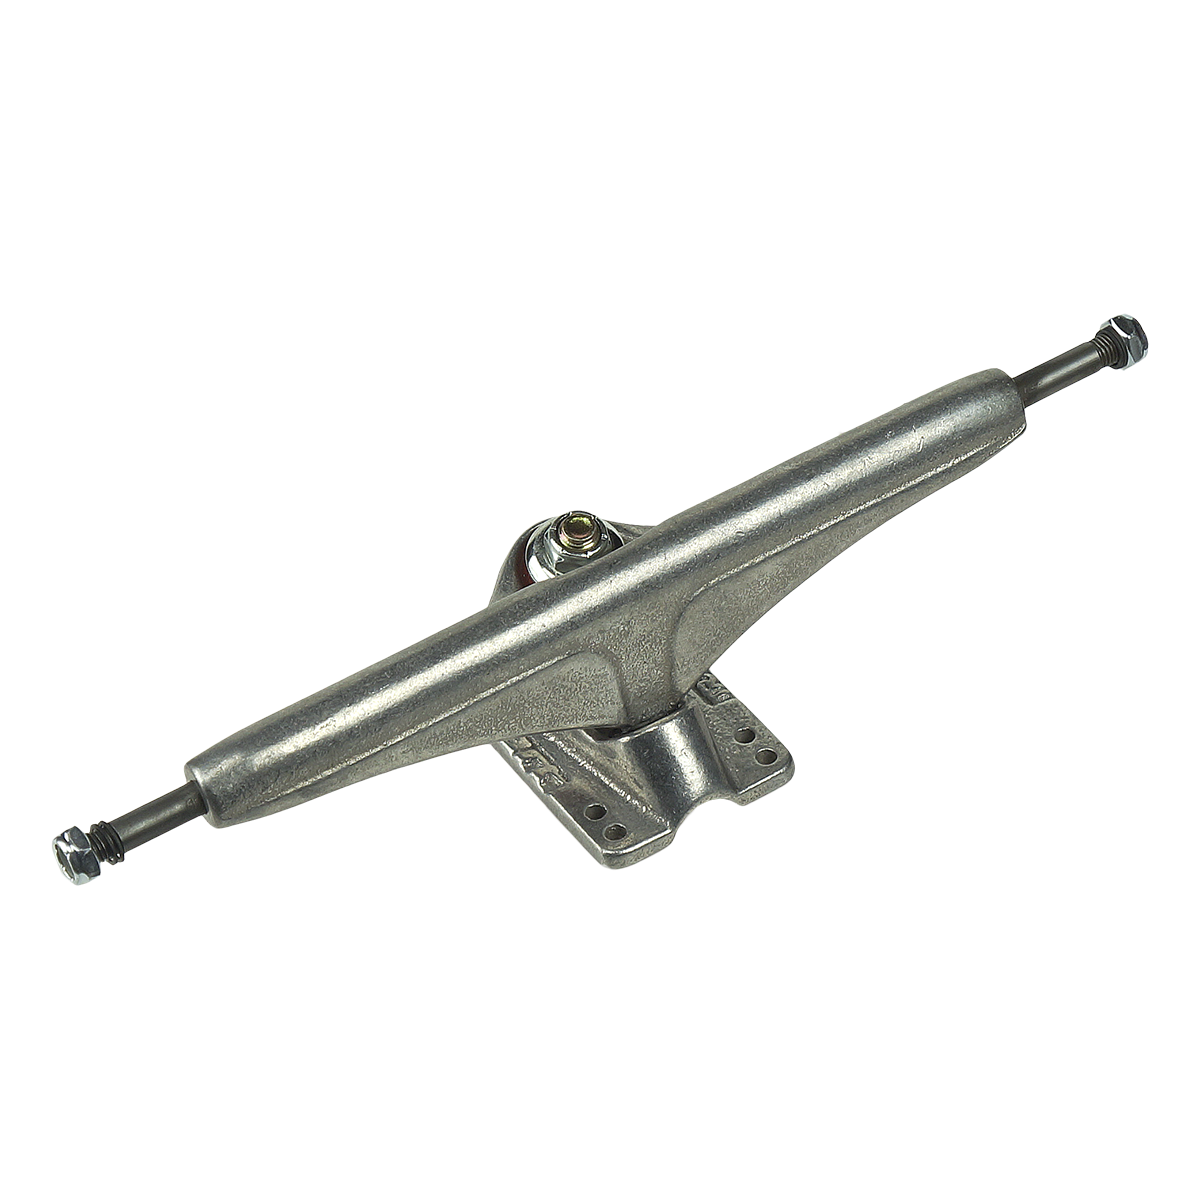 DART / 219mm - 11.25 axle